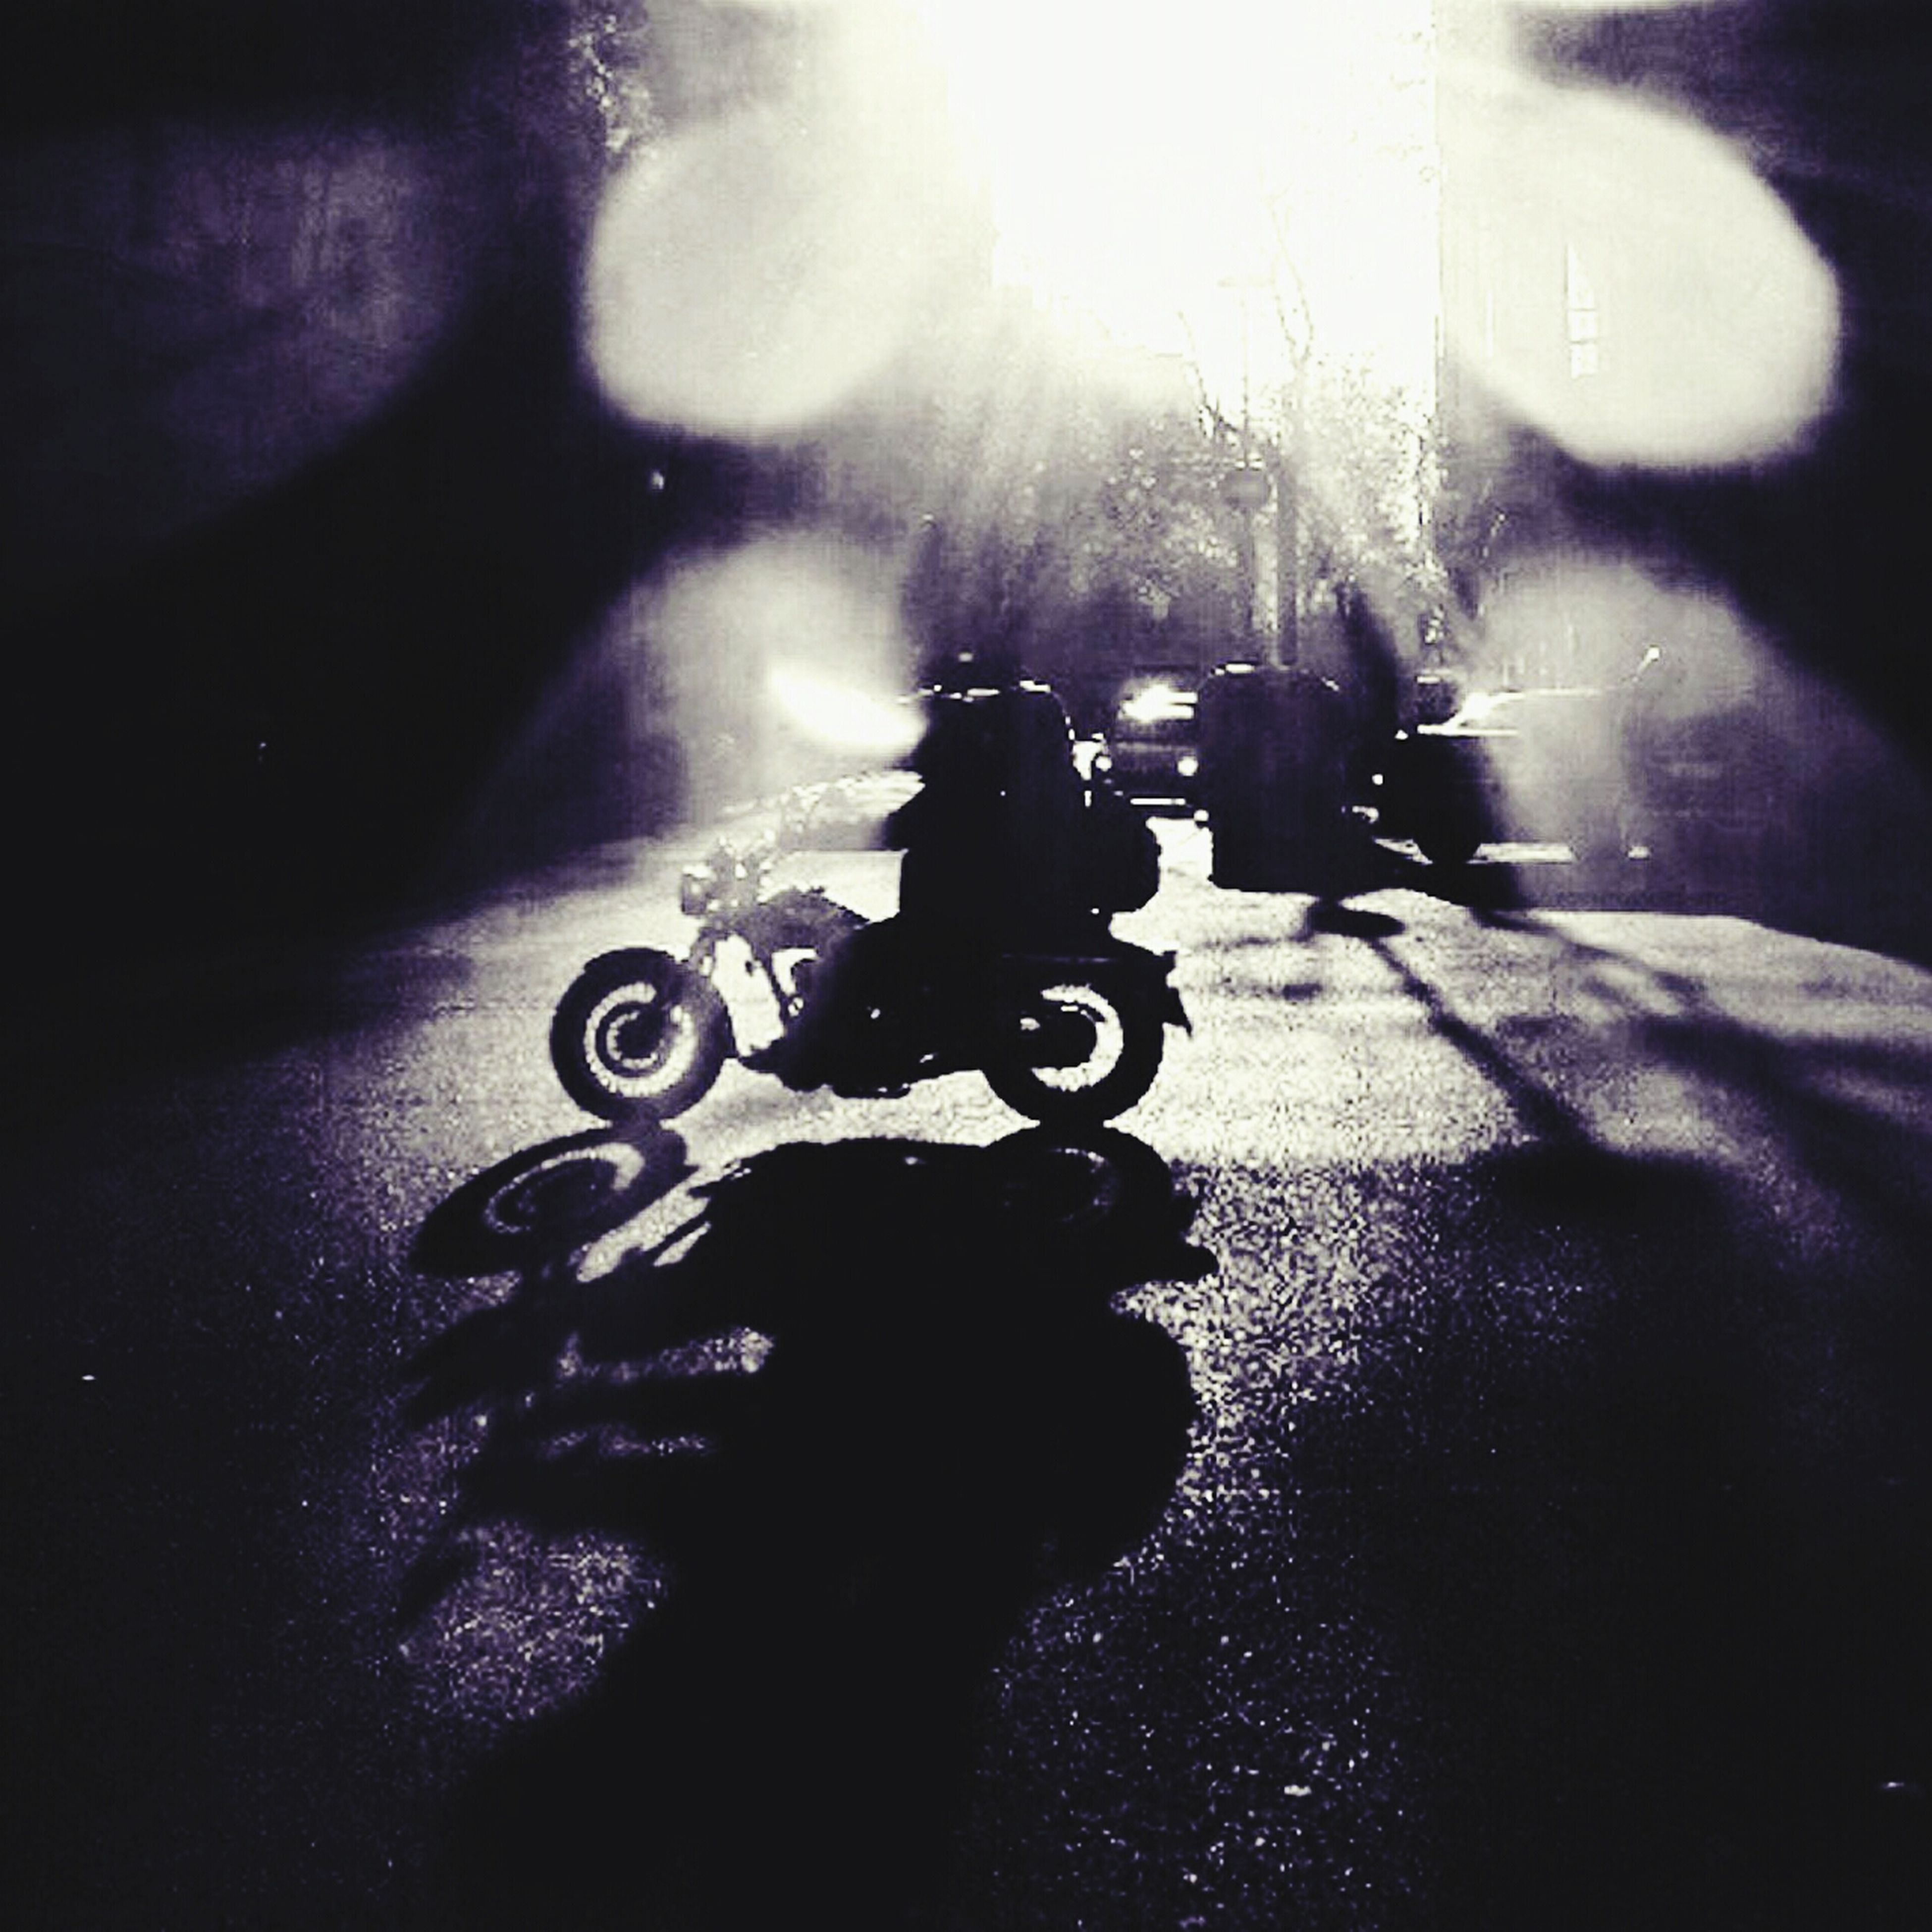 transportation, land vehicle, lifestyles, mode of transport, street, leisure activity, men, bicycle, car, riding, road, shadow, sunlight, reflection, on the move, travel, unrecognizable person